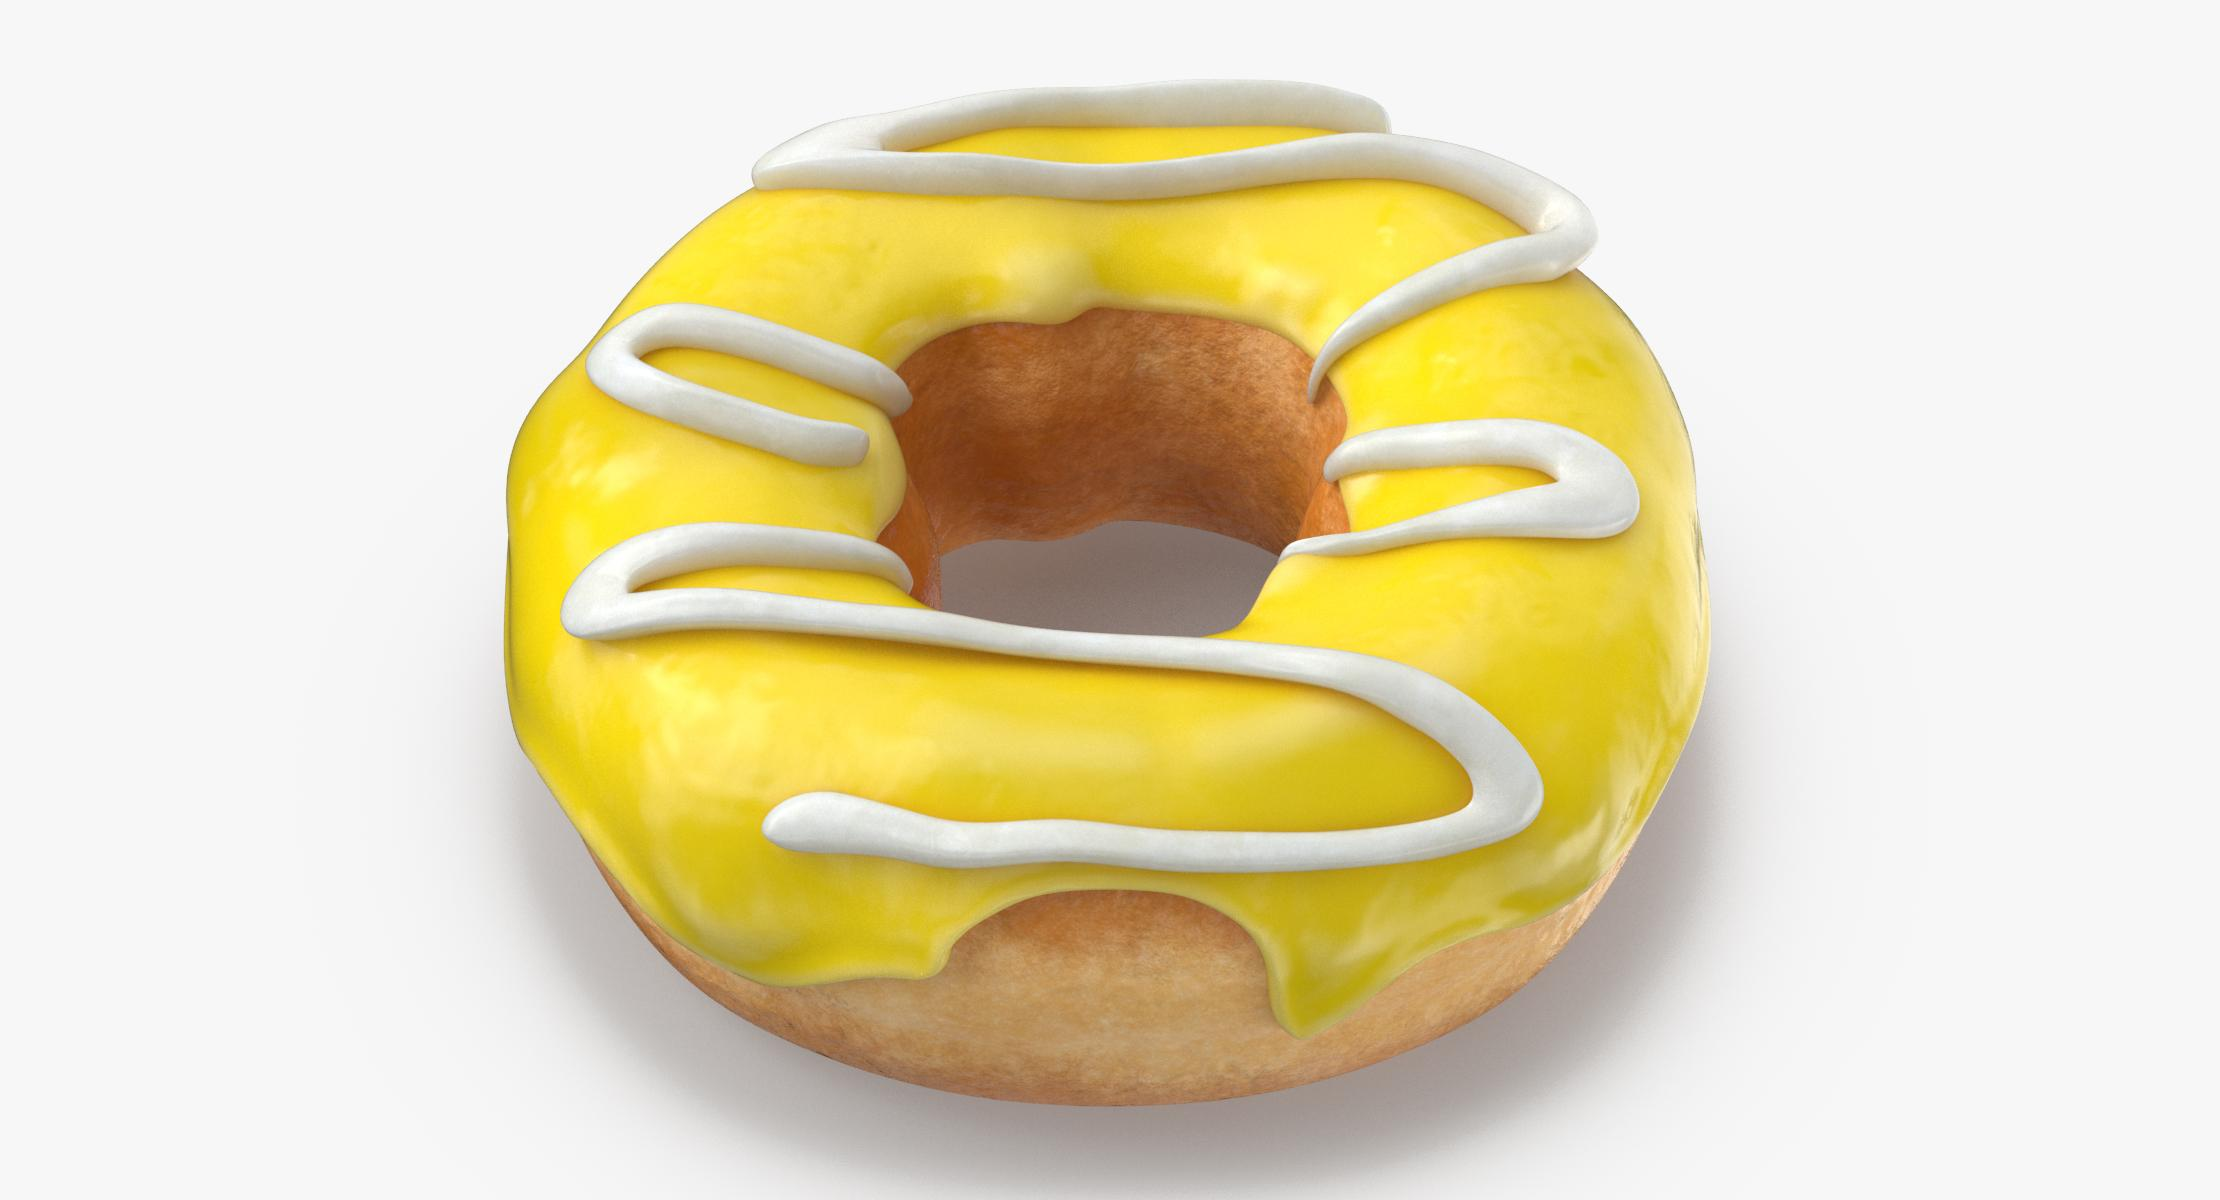 Donut 05 - Yellow - reel 1